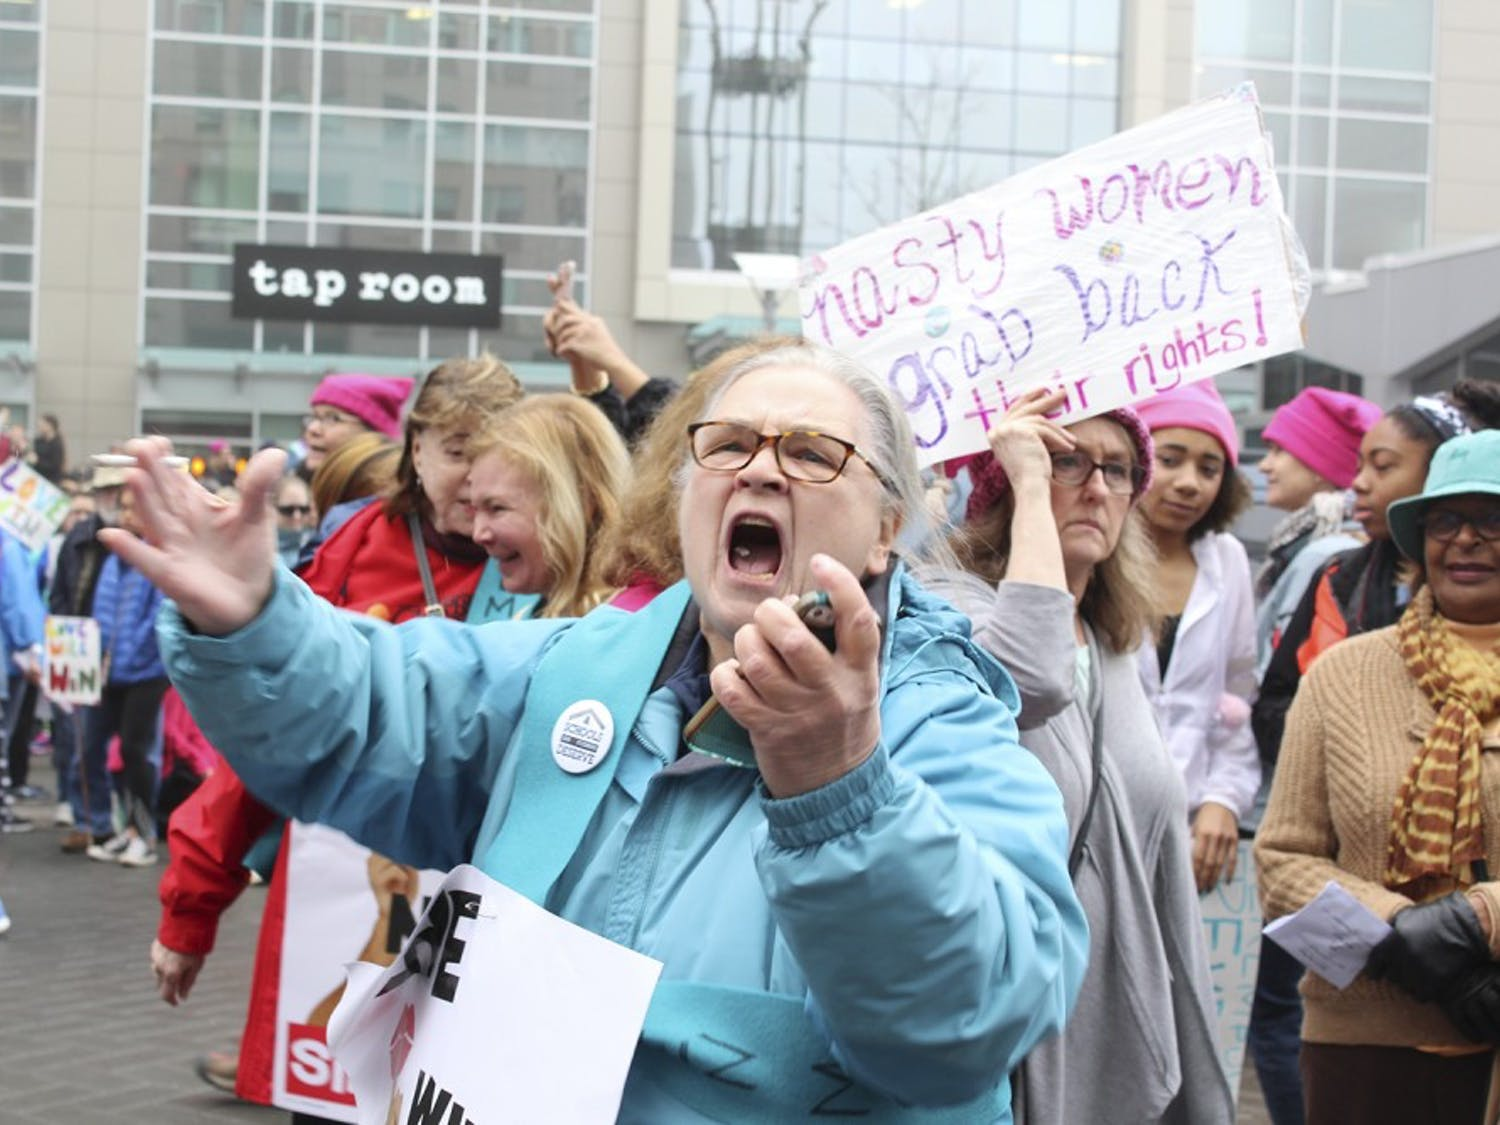 An estimated 17,000 people gathered in Raleigh on Saturday to participate in the Women's March. This is one of manysatellite marches taking place across the globe. The main protest took place in Washington, and other marches took place in major cities across the United States such asNew York, Chicago, Los Angeles, andHouston. Other marches occurredinternationally in places like the U.K., Mexico, Australia and Canada. A total of673 official marches took place across the world with an estimated 2,587,190 people participating.